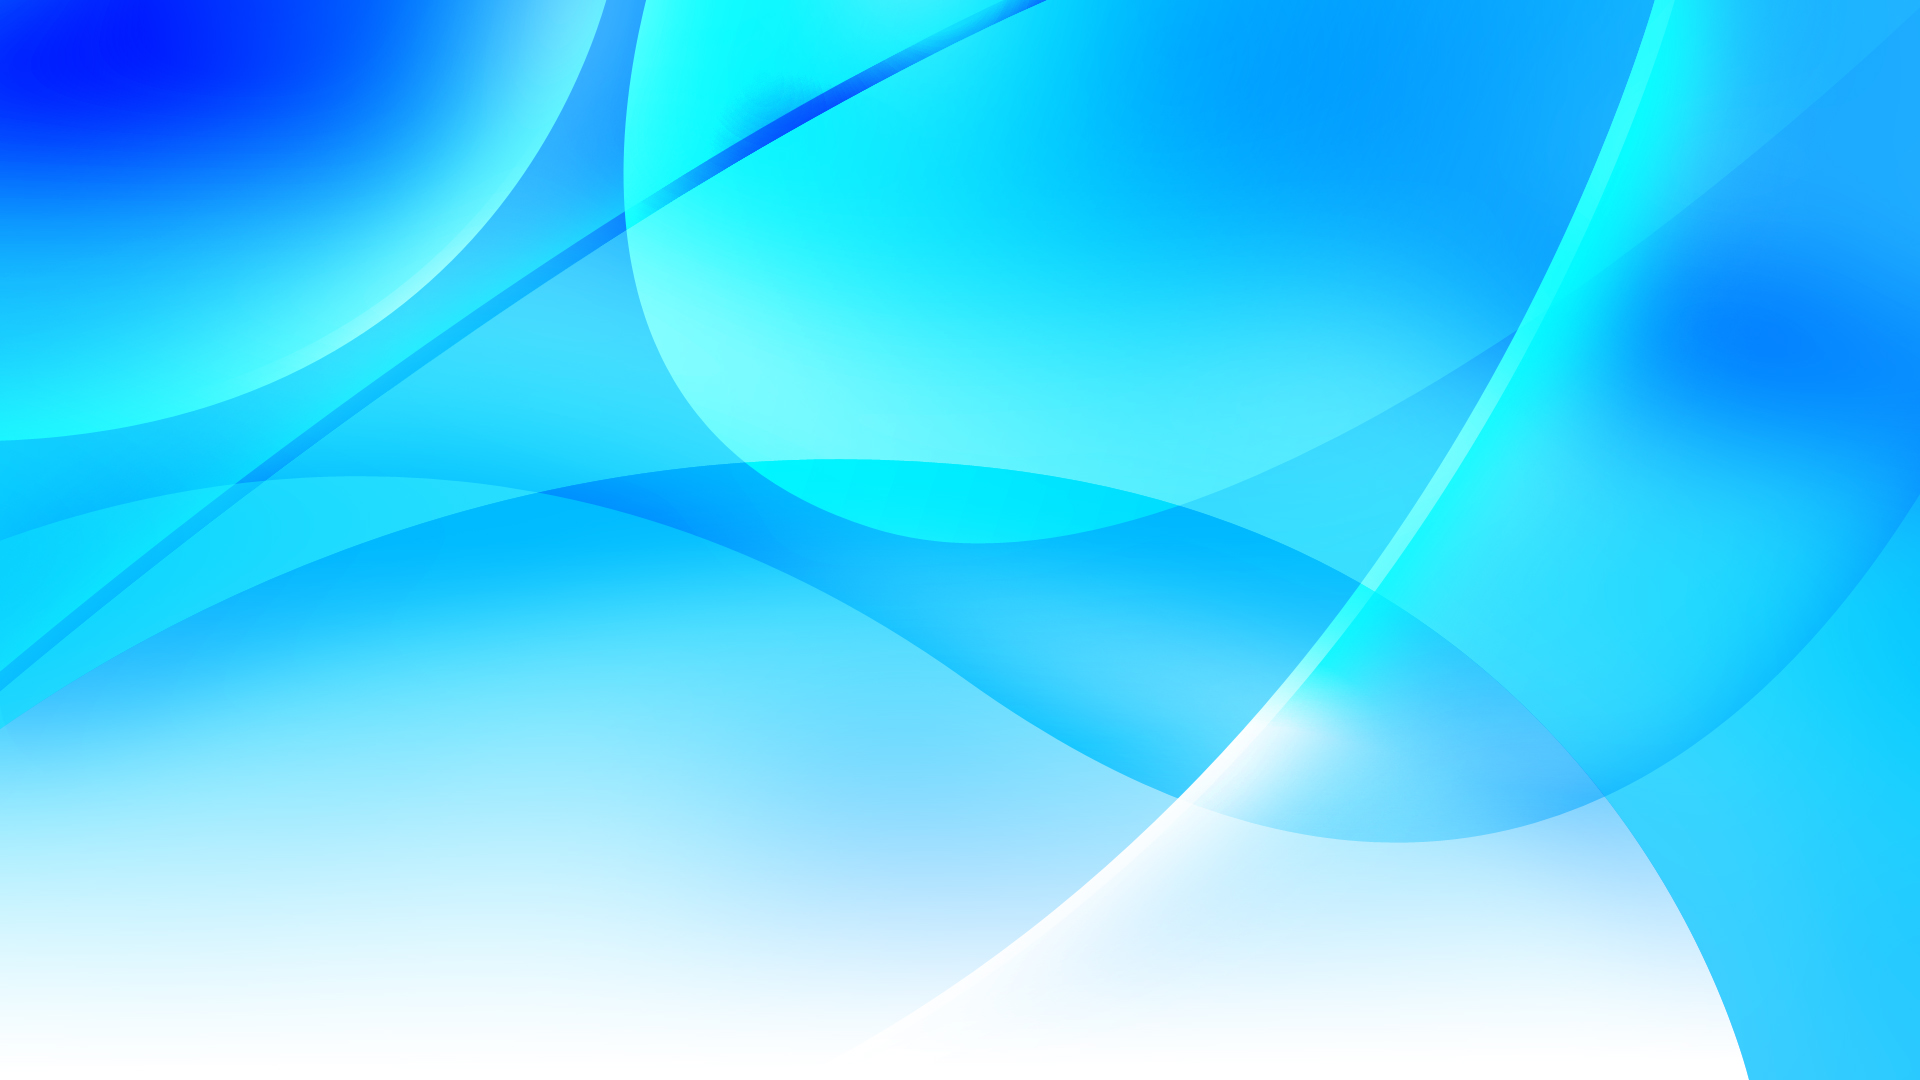 Blue White Background HD Pictures Only hd wallpapers 1920x1080